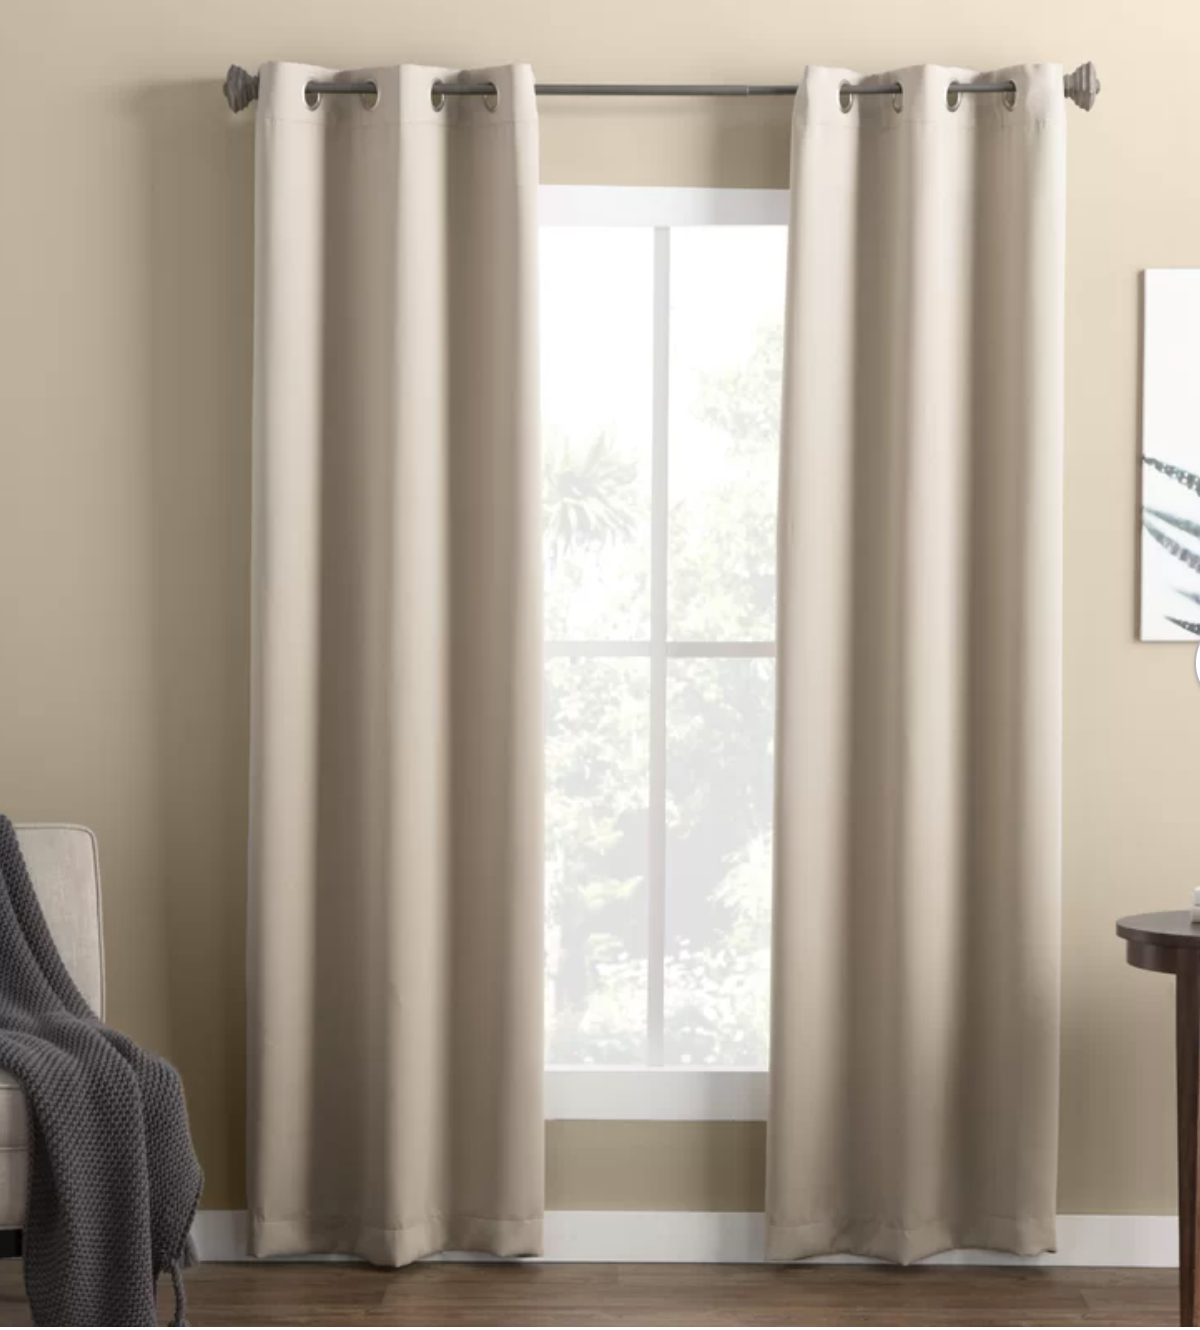 window with white curtains on either side